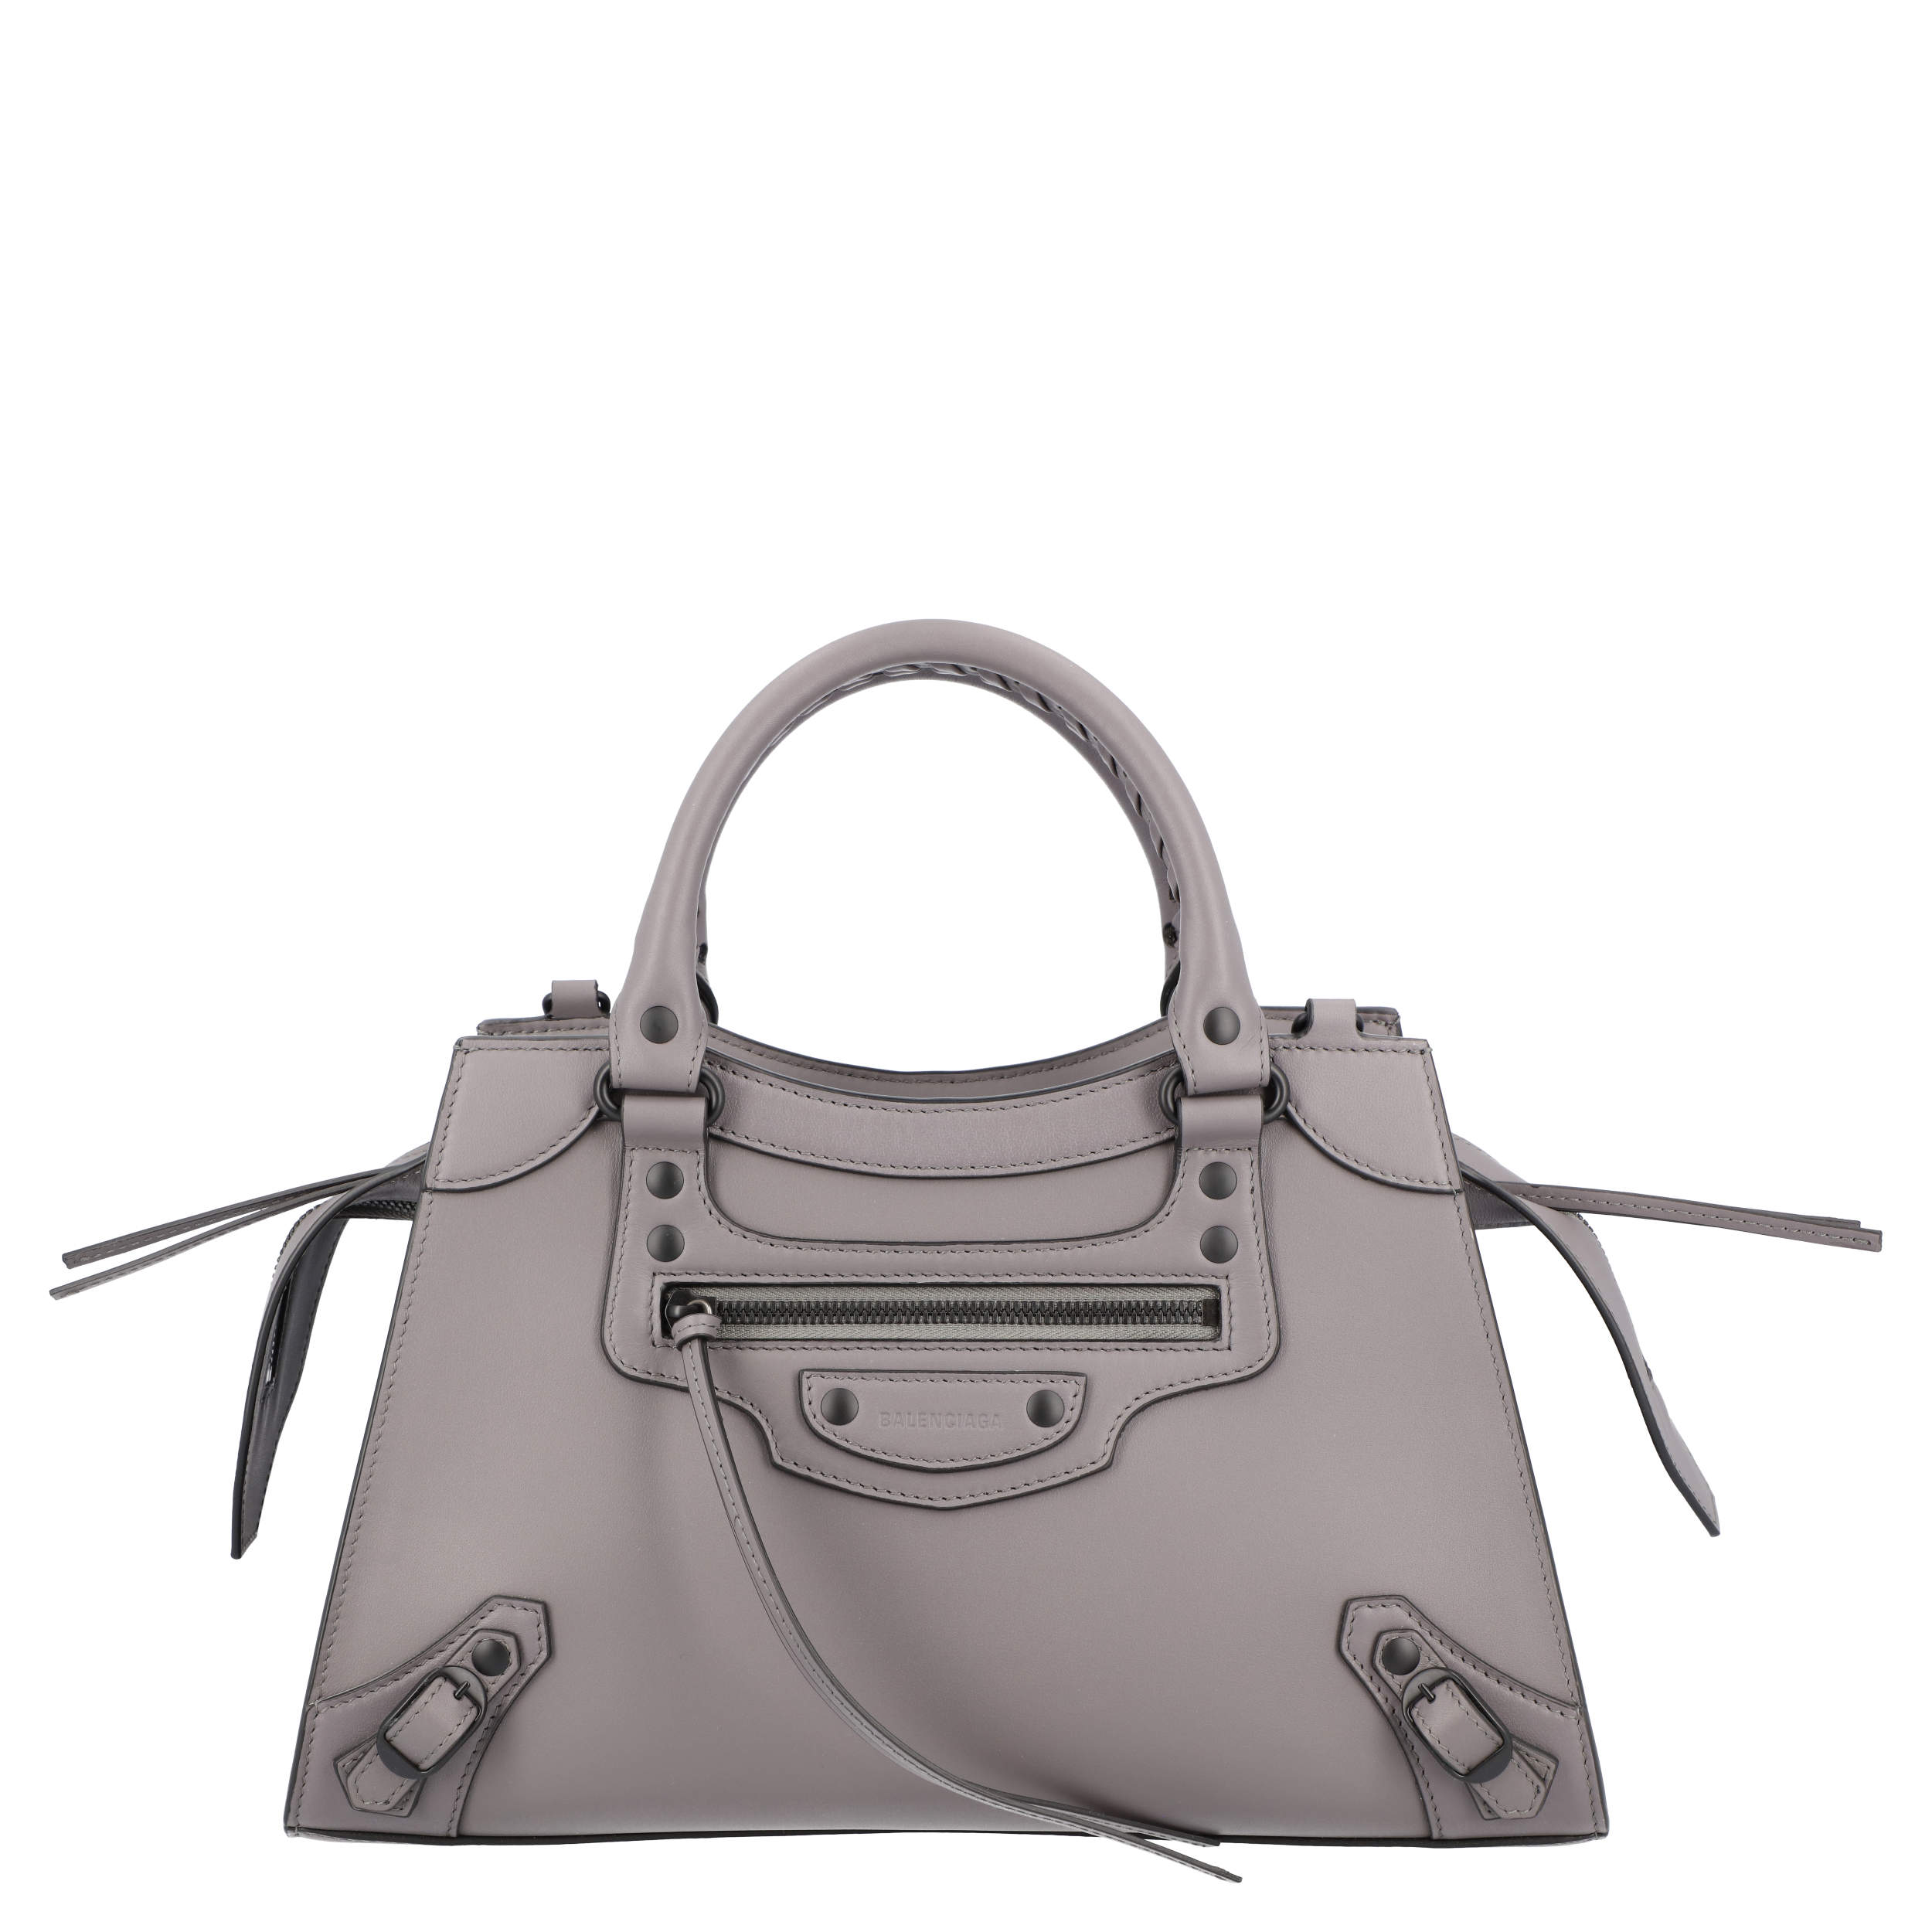 Balenciaga Grey Leather Neo Classic Small top handle bag